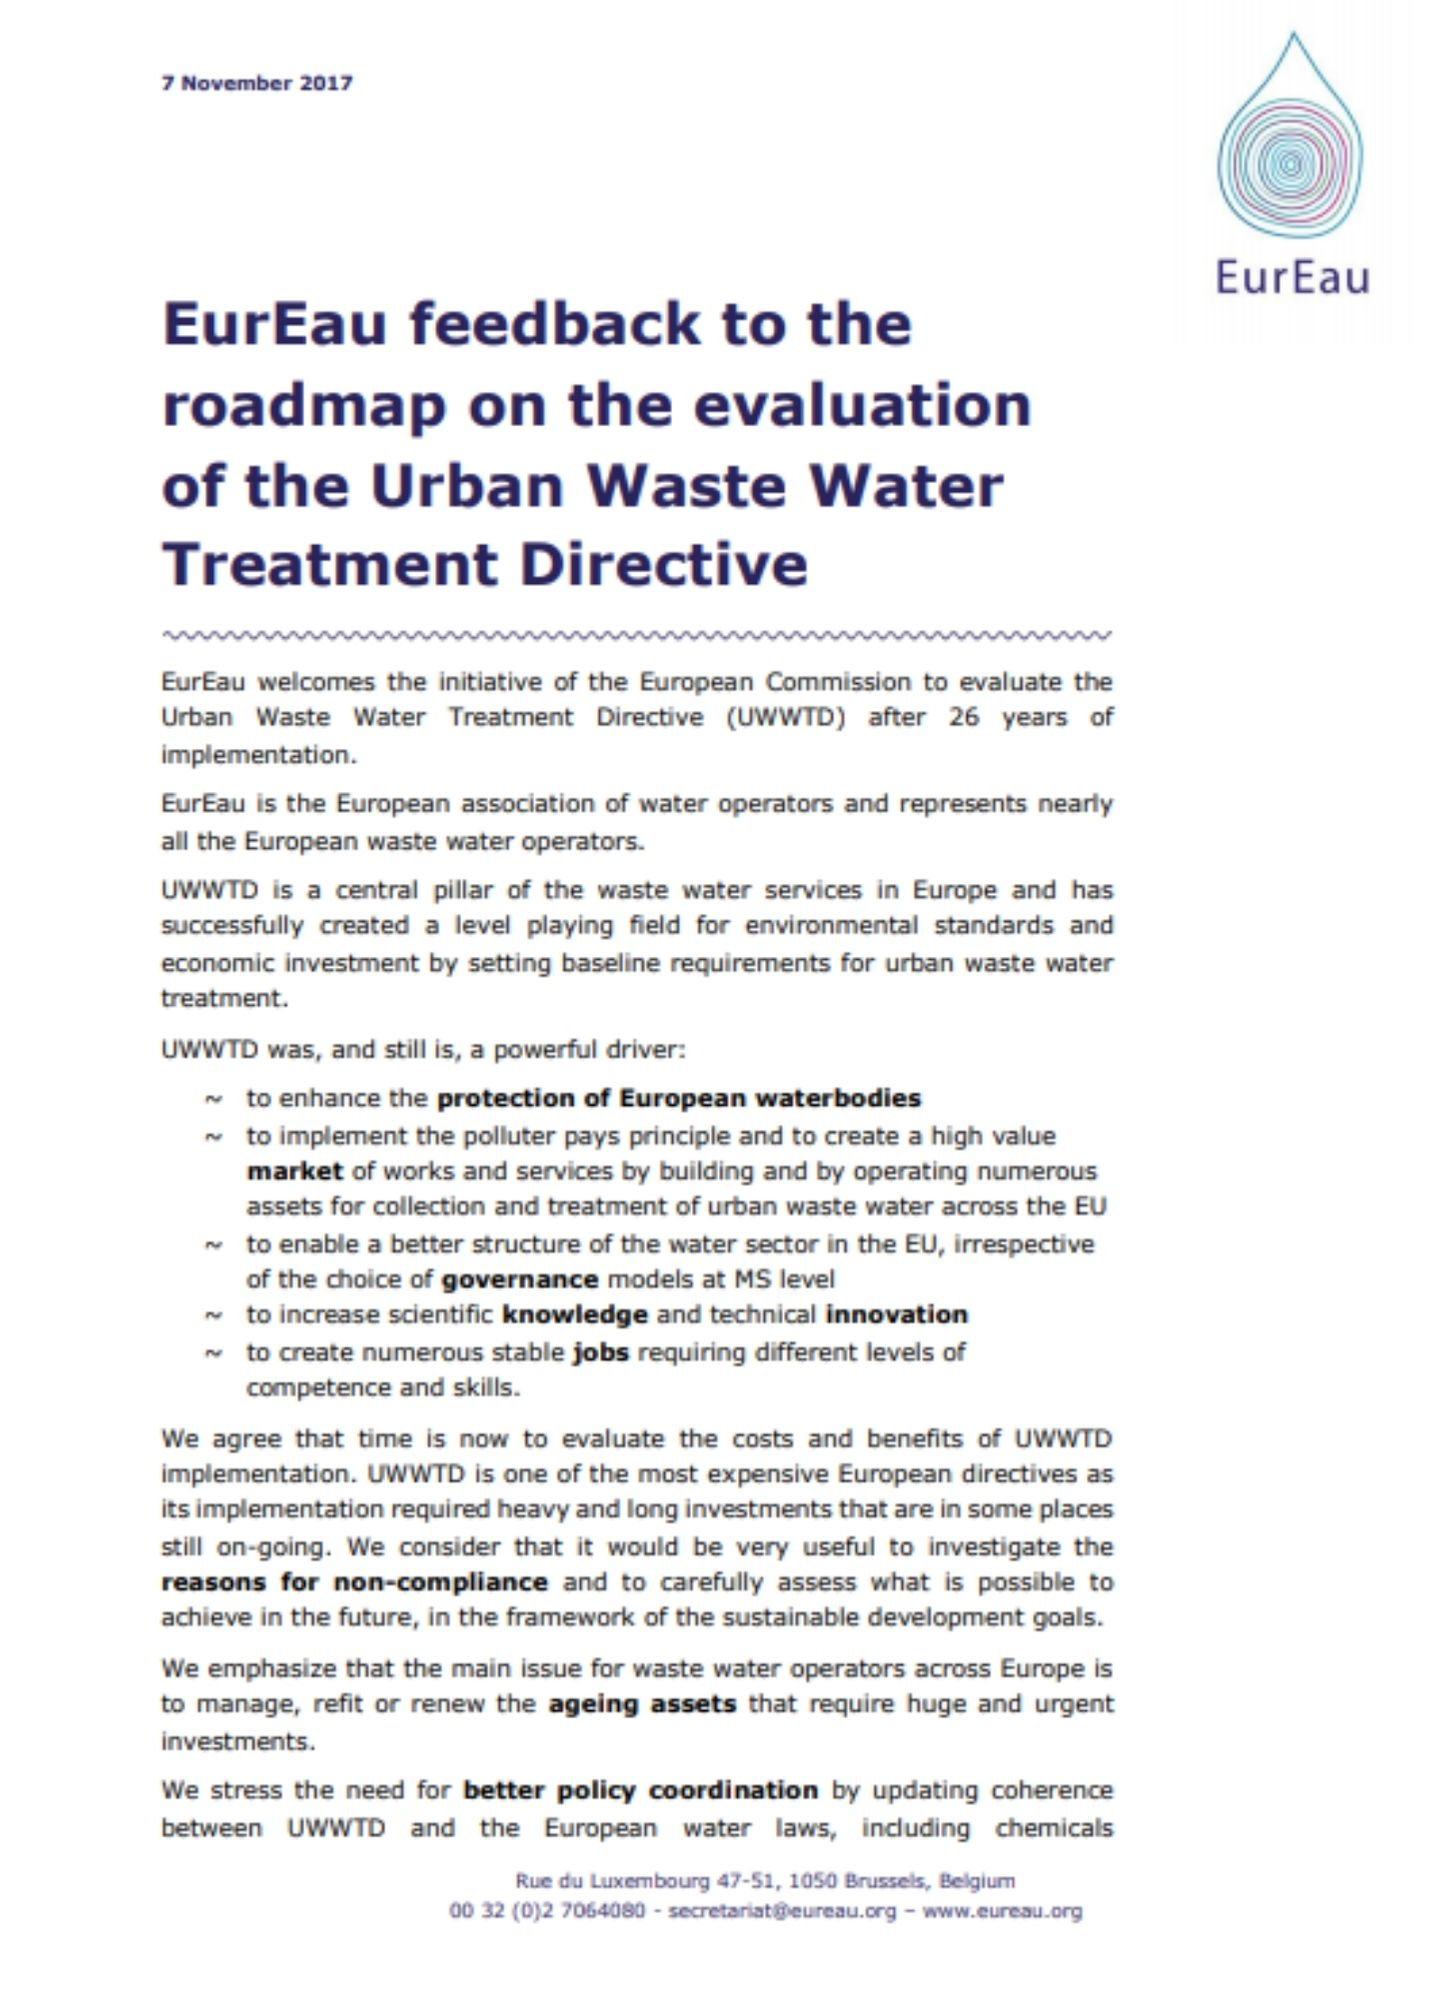 EurEau feedback on the evaluation of the UWWTD